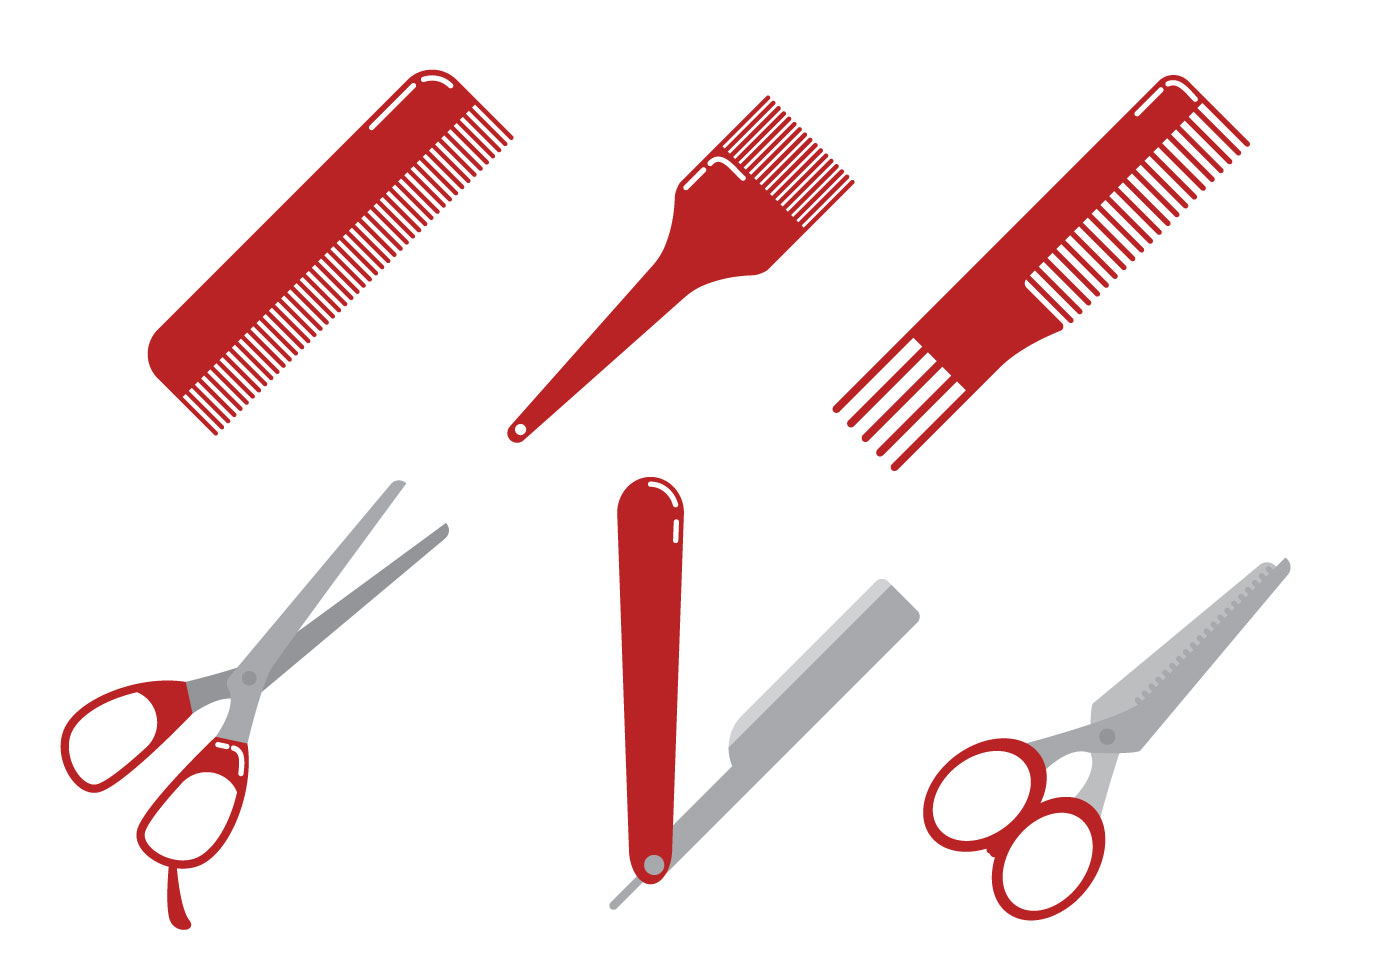 barber-tools-vector